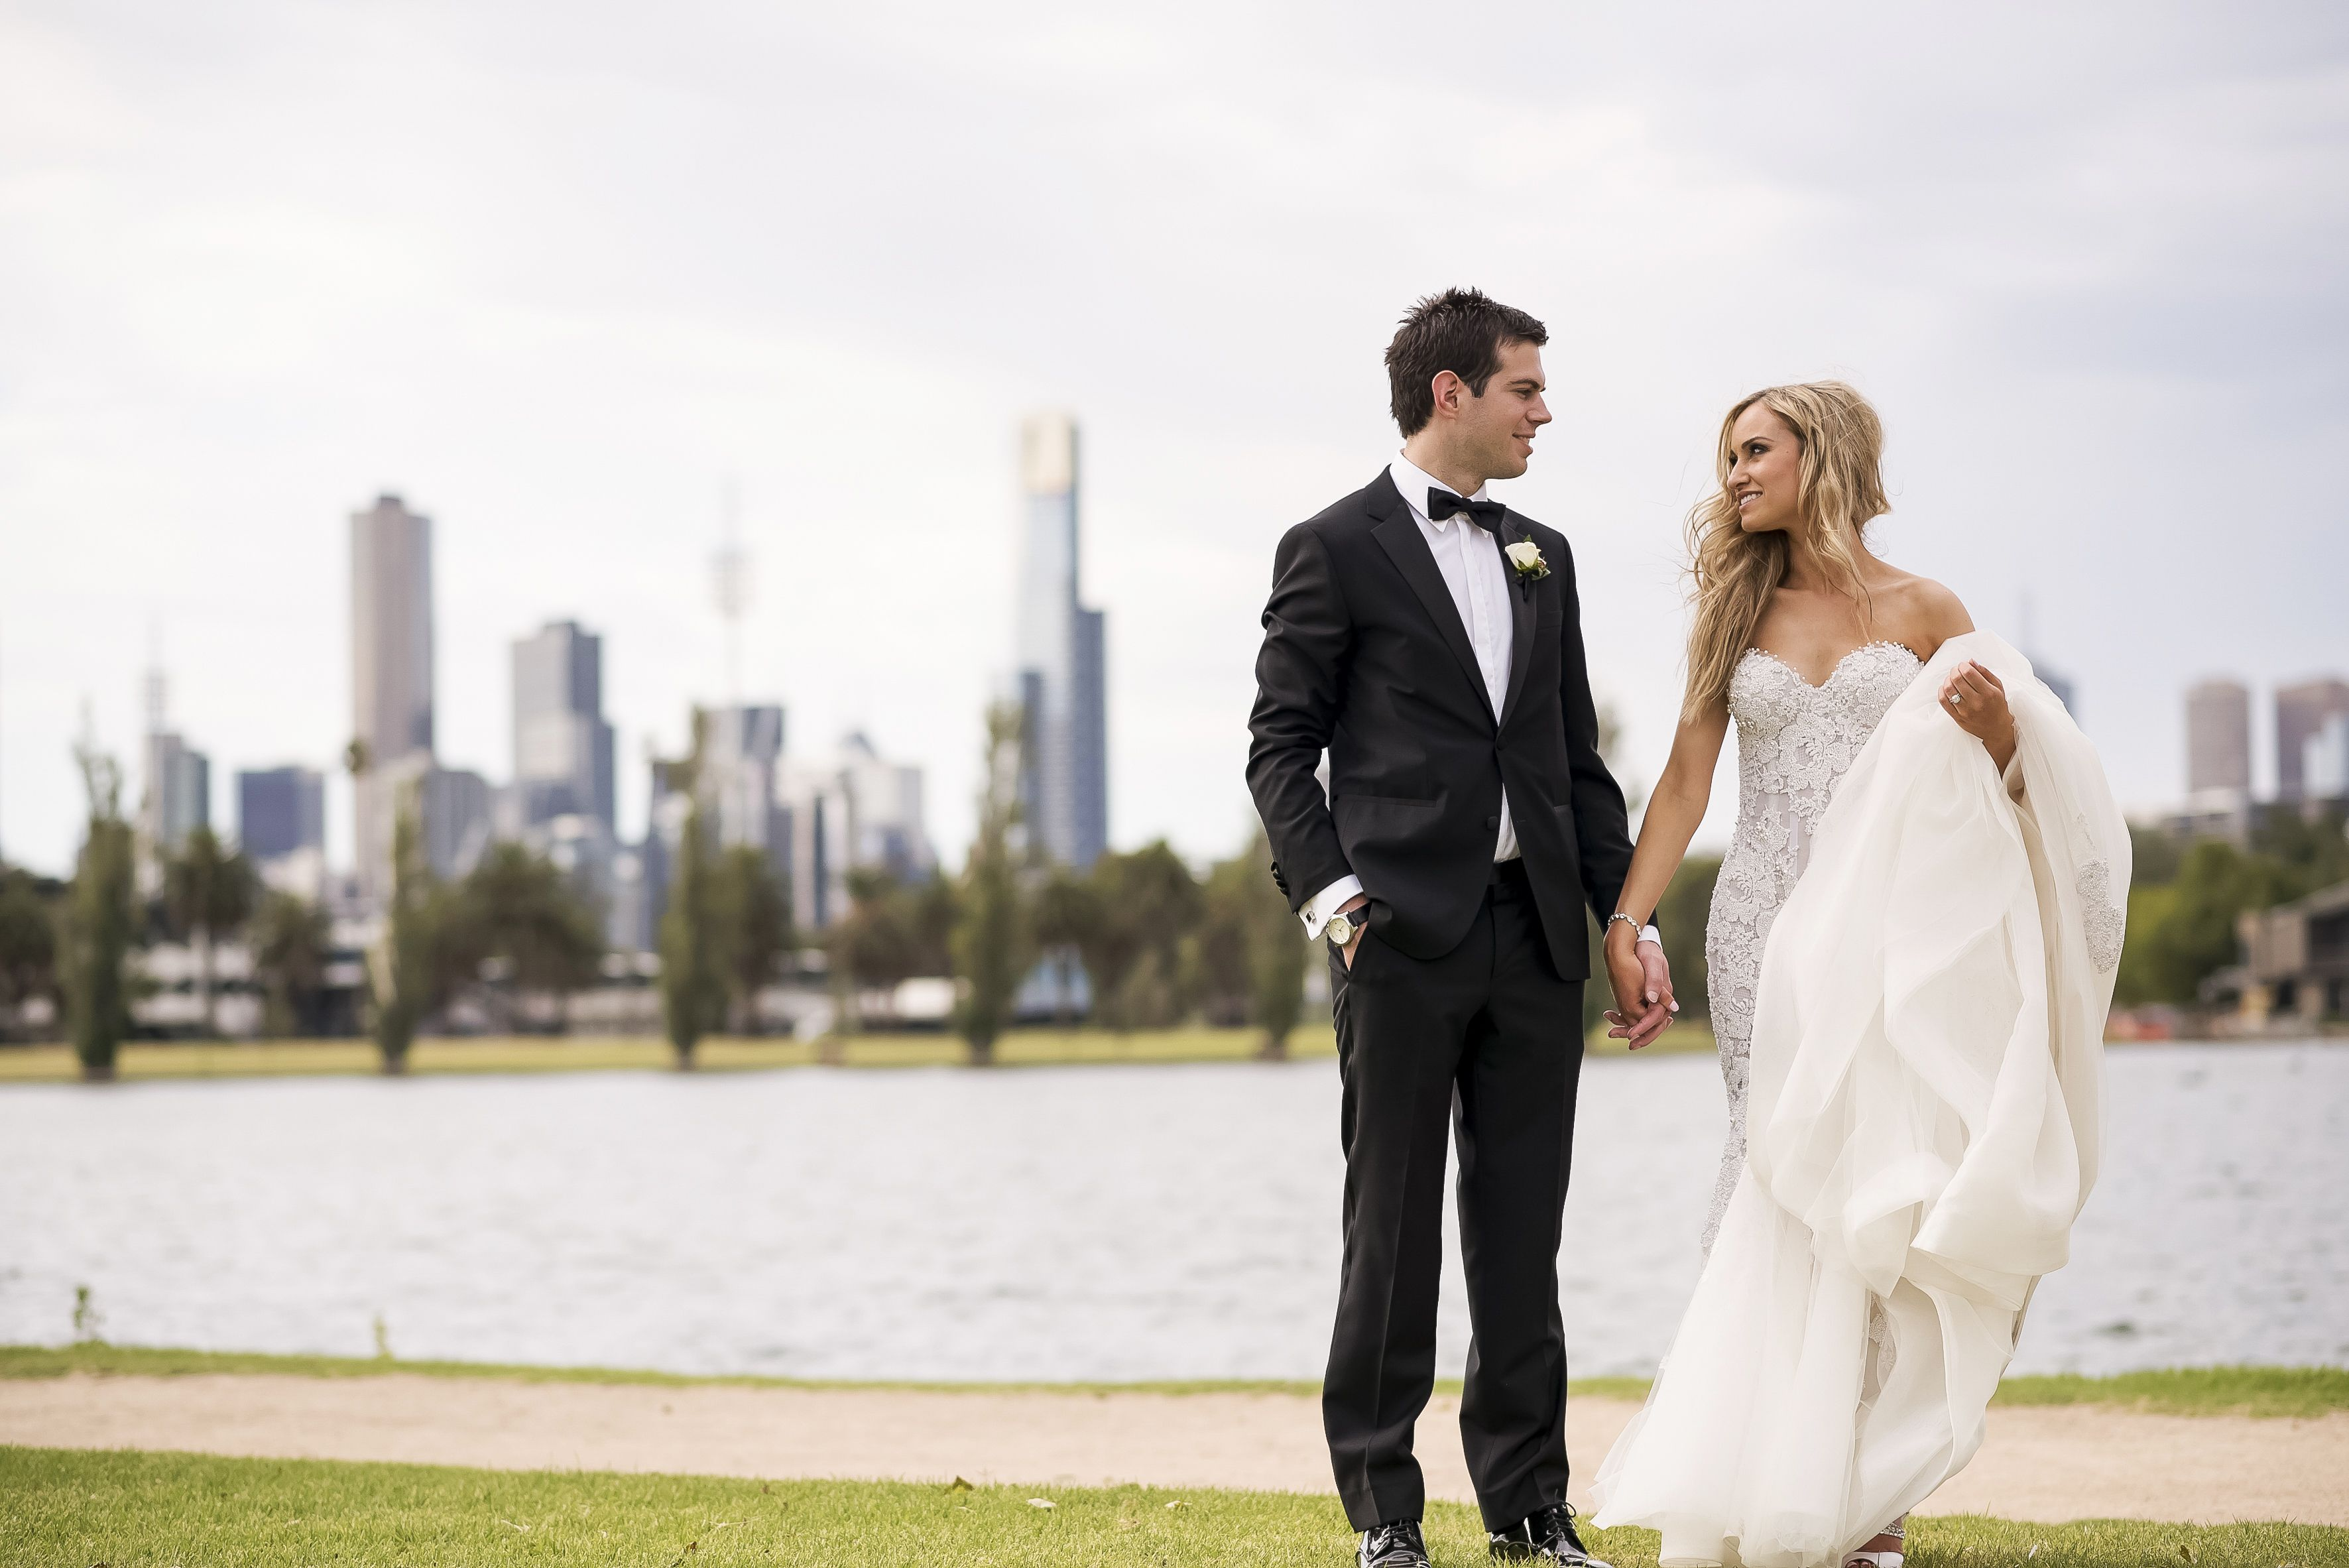 Bride in Steven Khalil wedding dress and groom in tuxedo and Melbourne backdrop | itakeyou.co.uk